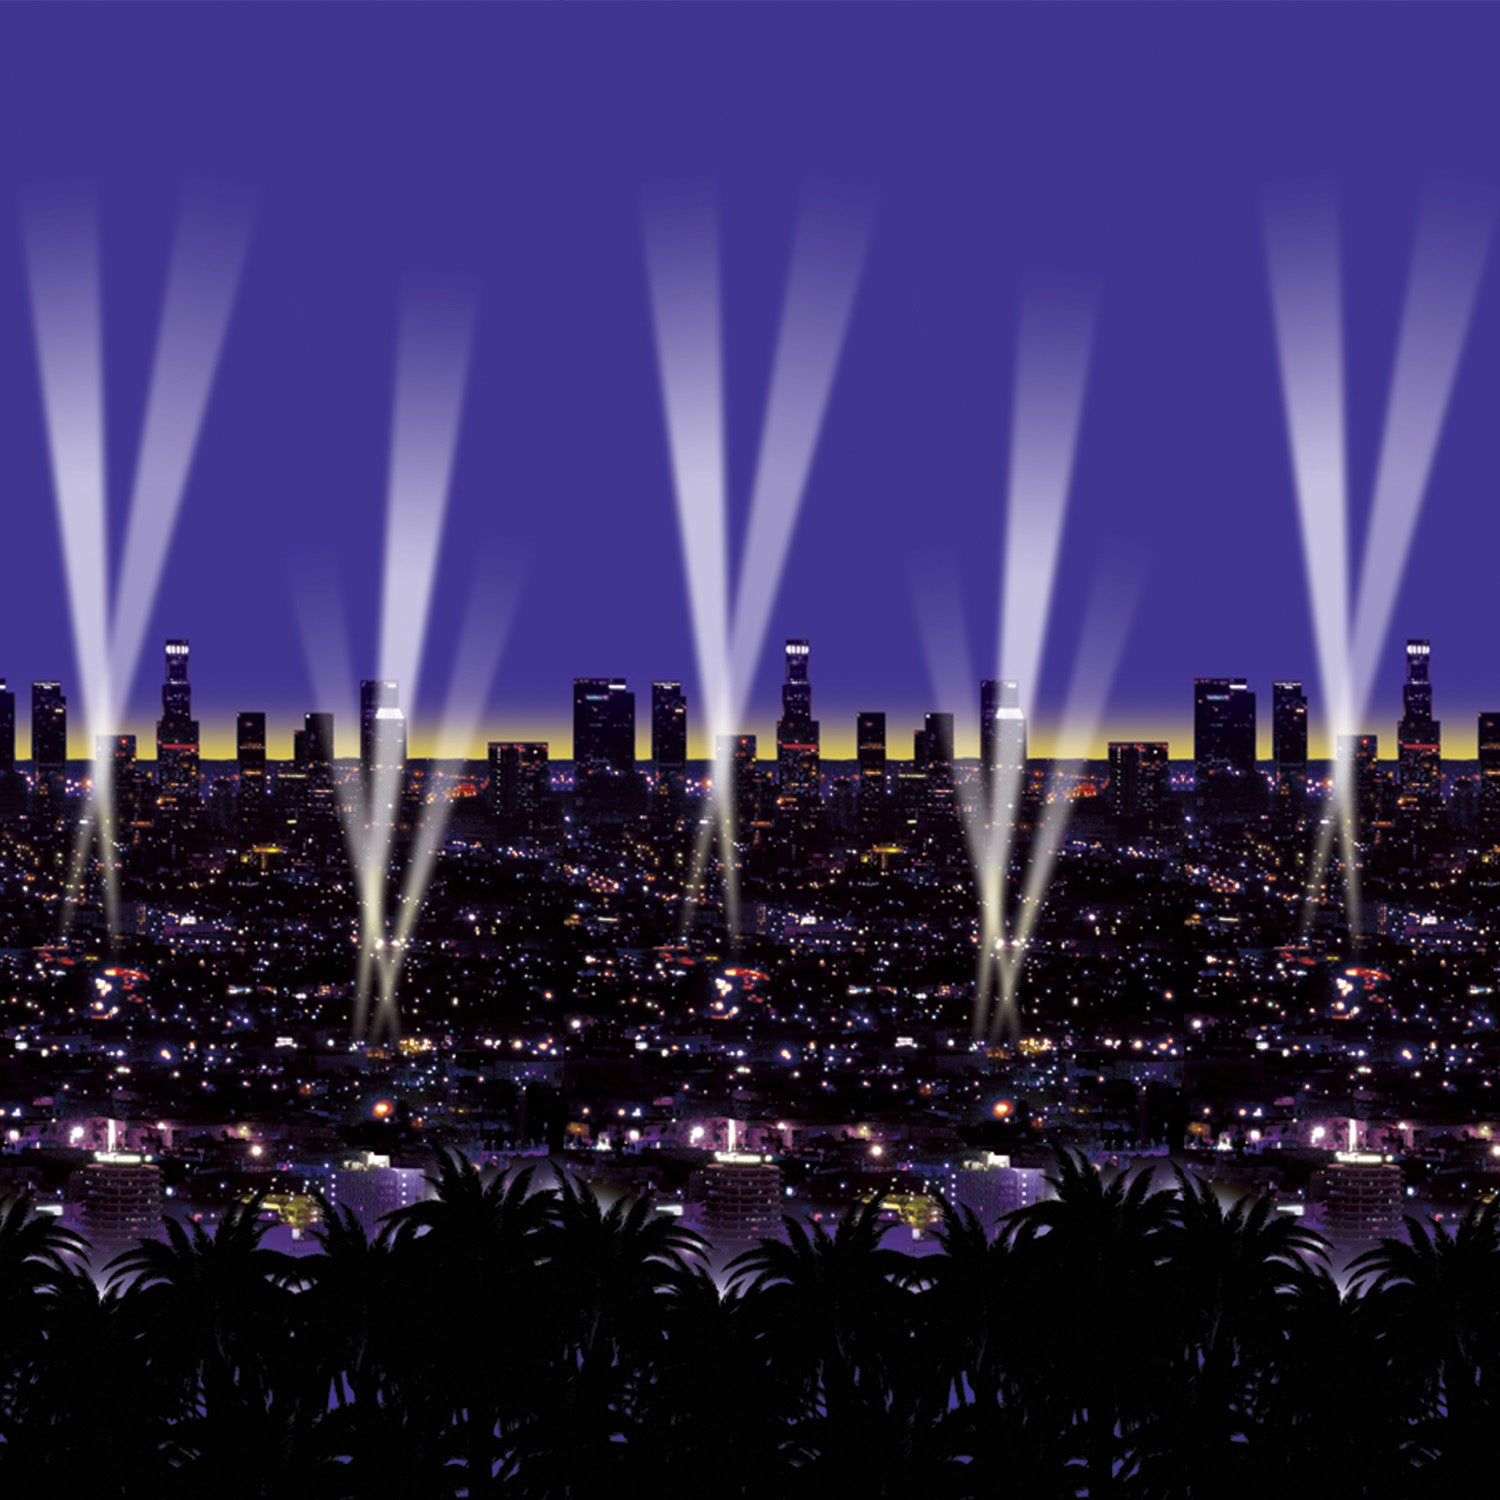 Skyline Backdrop by Beistle - Awards Night Theme Decorations